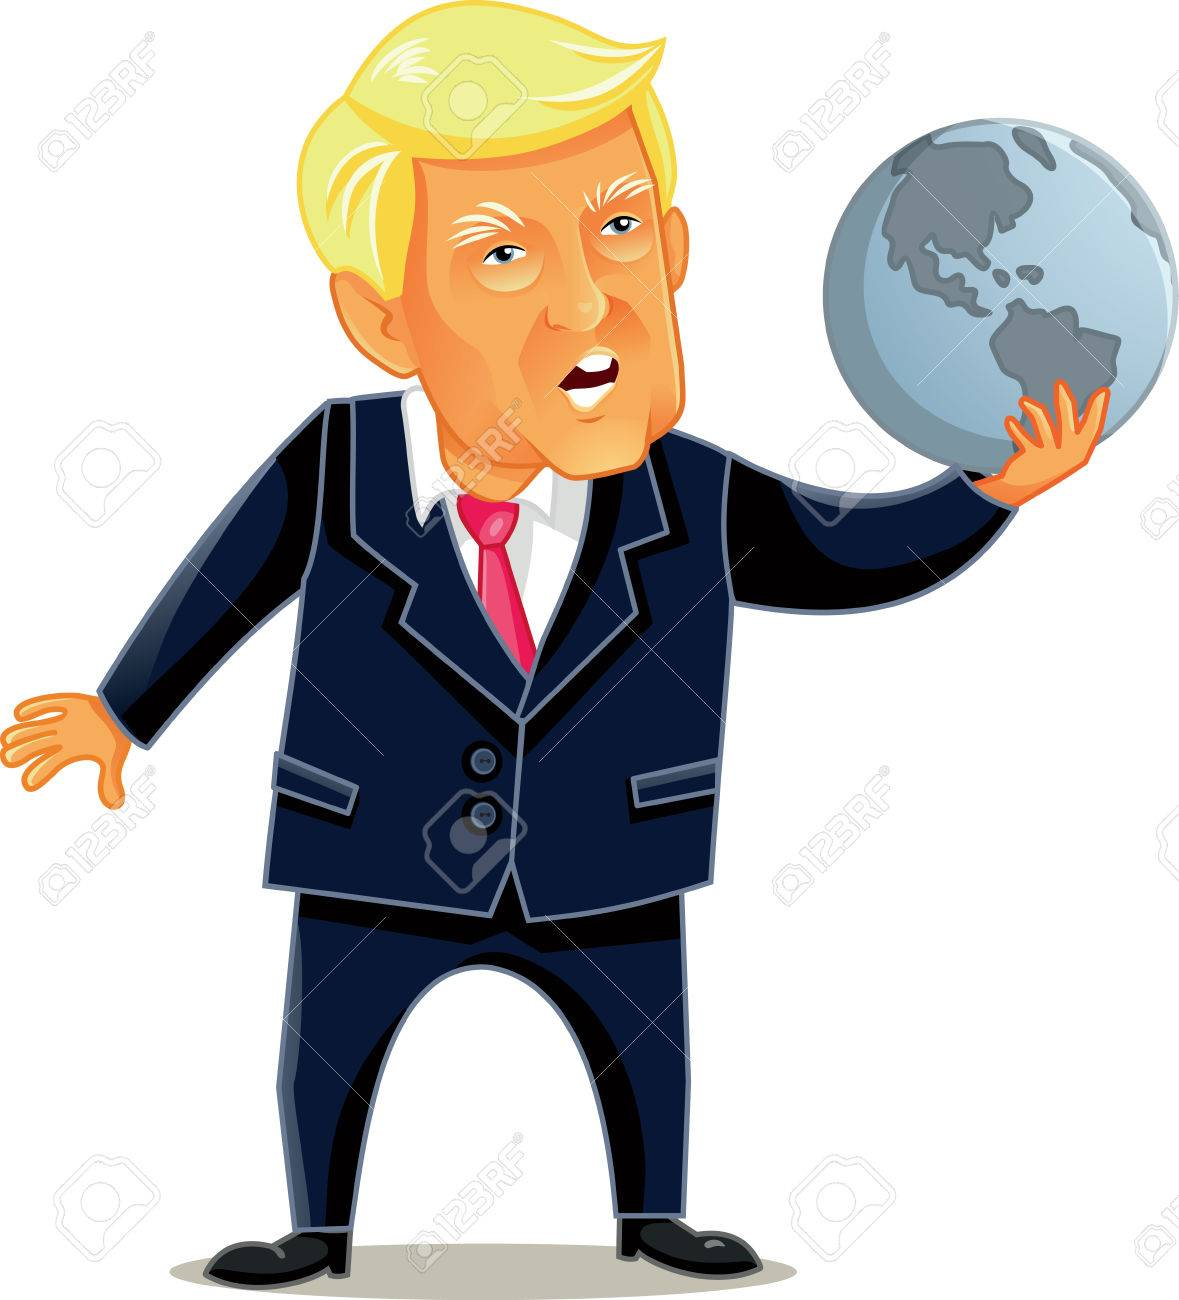 President Editorial Caricature Of President Donald Trump Holding World Globe Stock Photo 82535644 Stockfresh Editorial Caricature Of President Donald Trump Holding World Stock